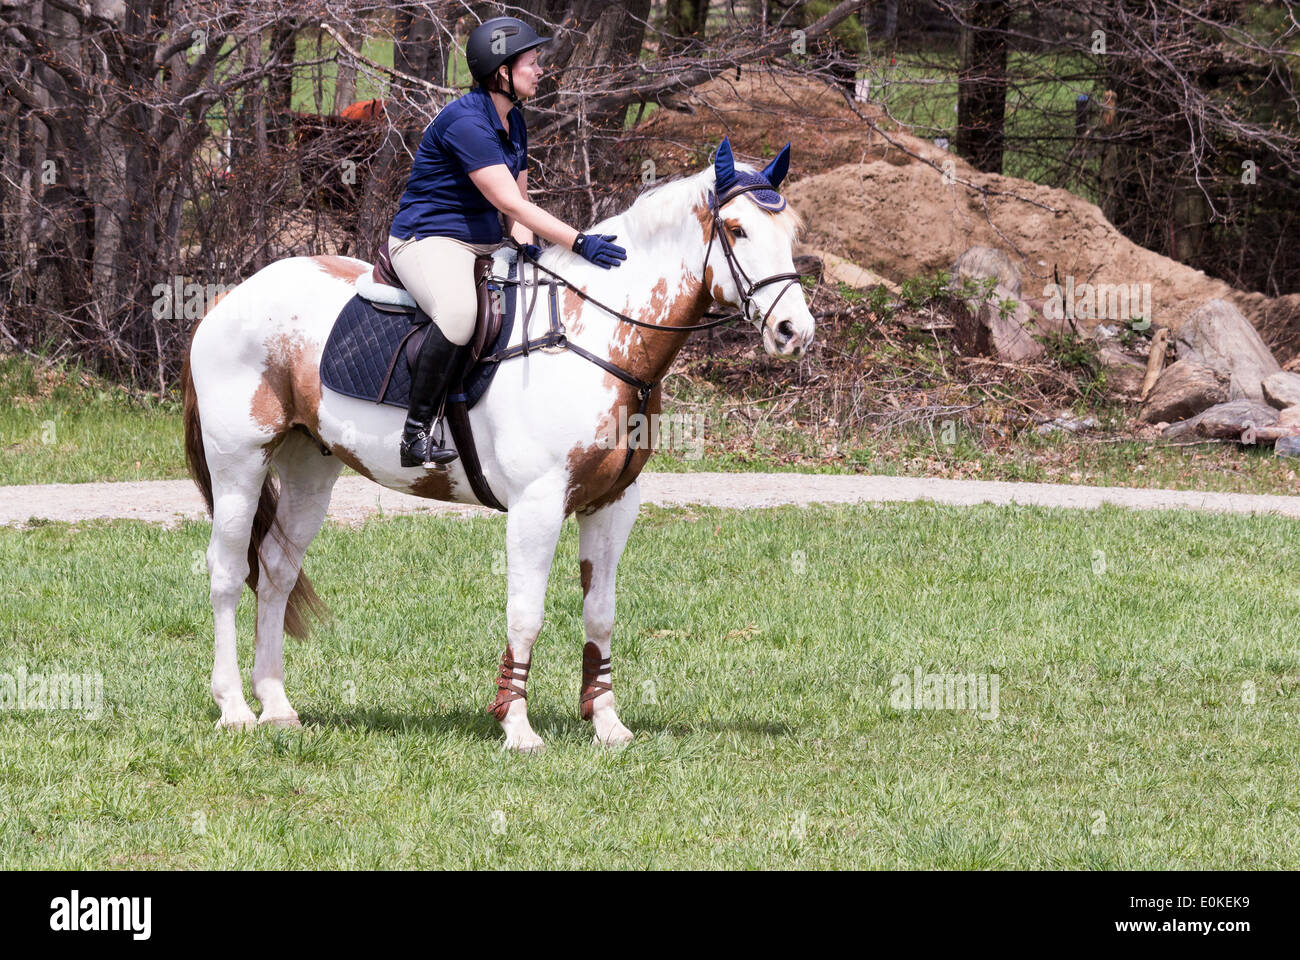 The 21 Best Horse Photos Of All Time   American paint horse ...